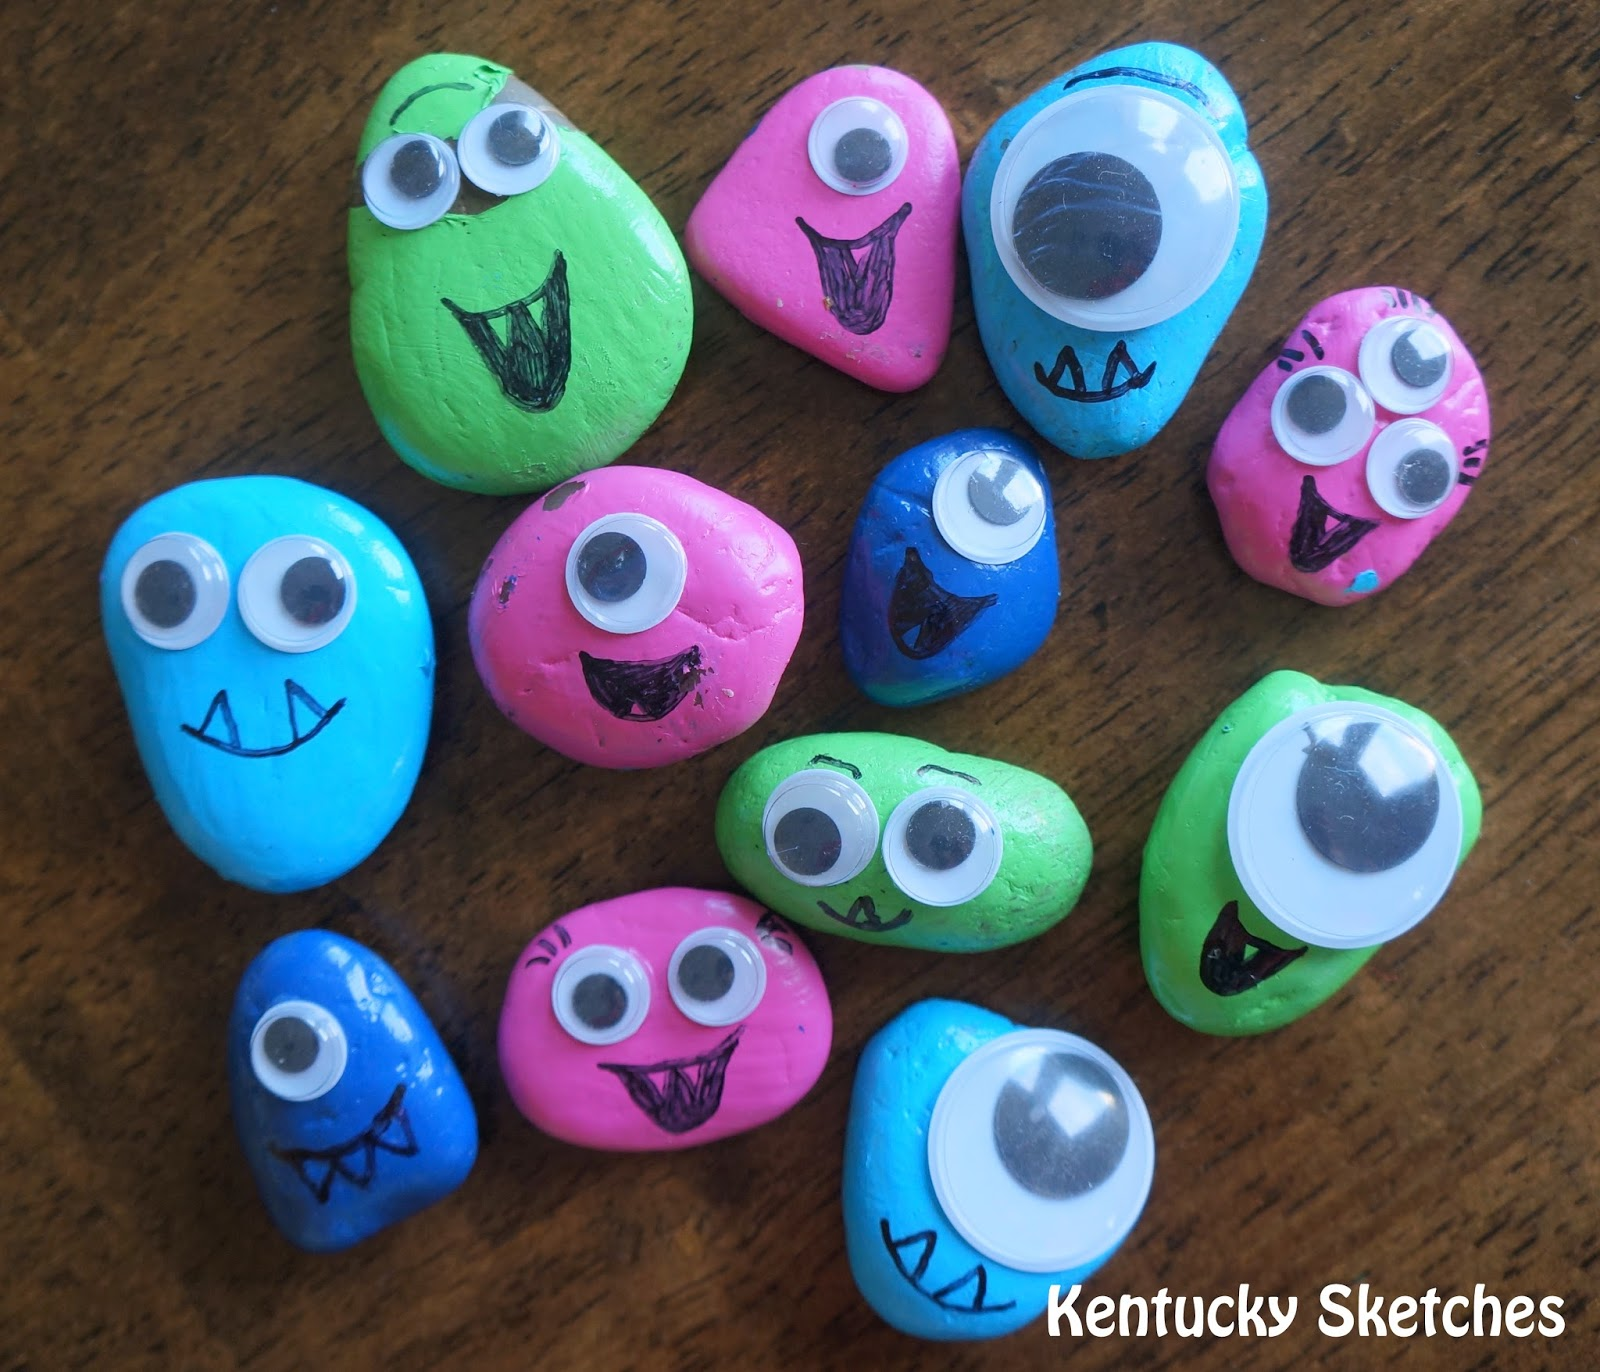 ROCK MONSTERS Plus Tips For Making Crafting With Kids Less Stressful